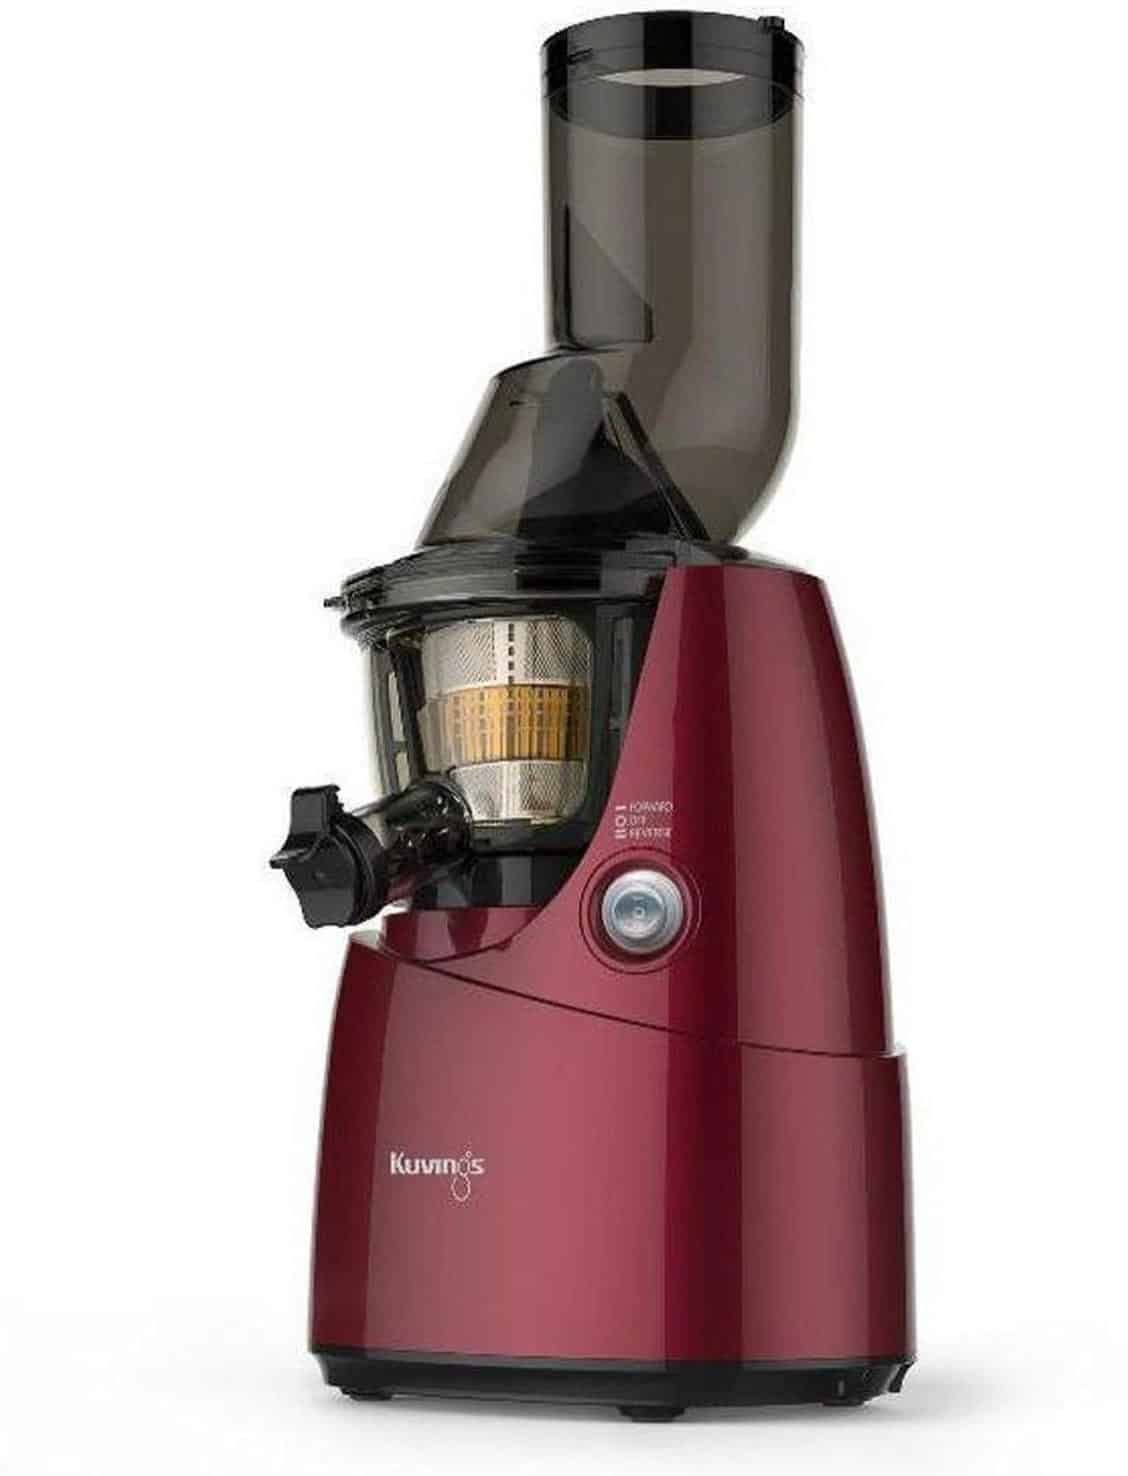 Kuvings B6000 PLUS - burgundowy